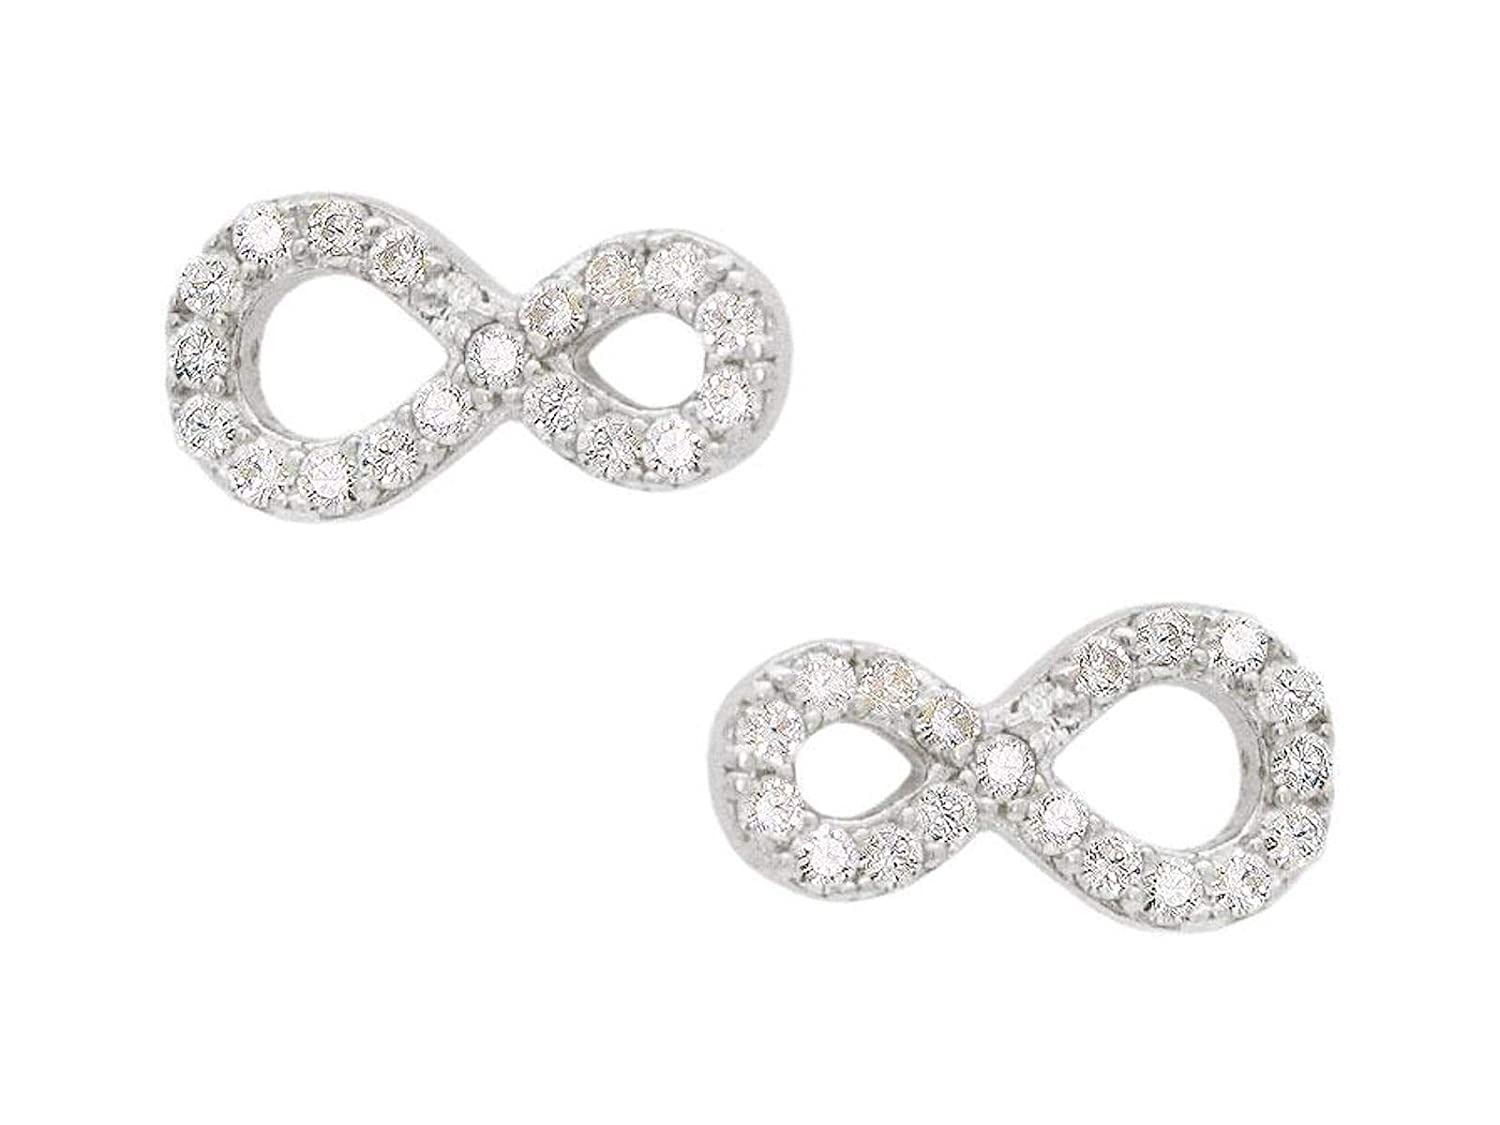 CZ Infinity Stud Earrings FRONAY Sterling Silver Simulated Diamonds